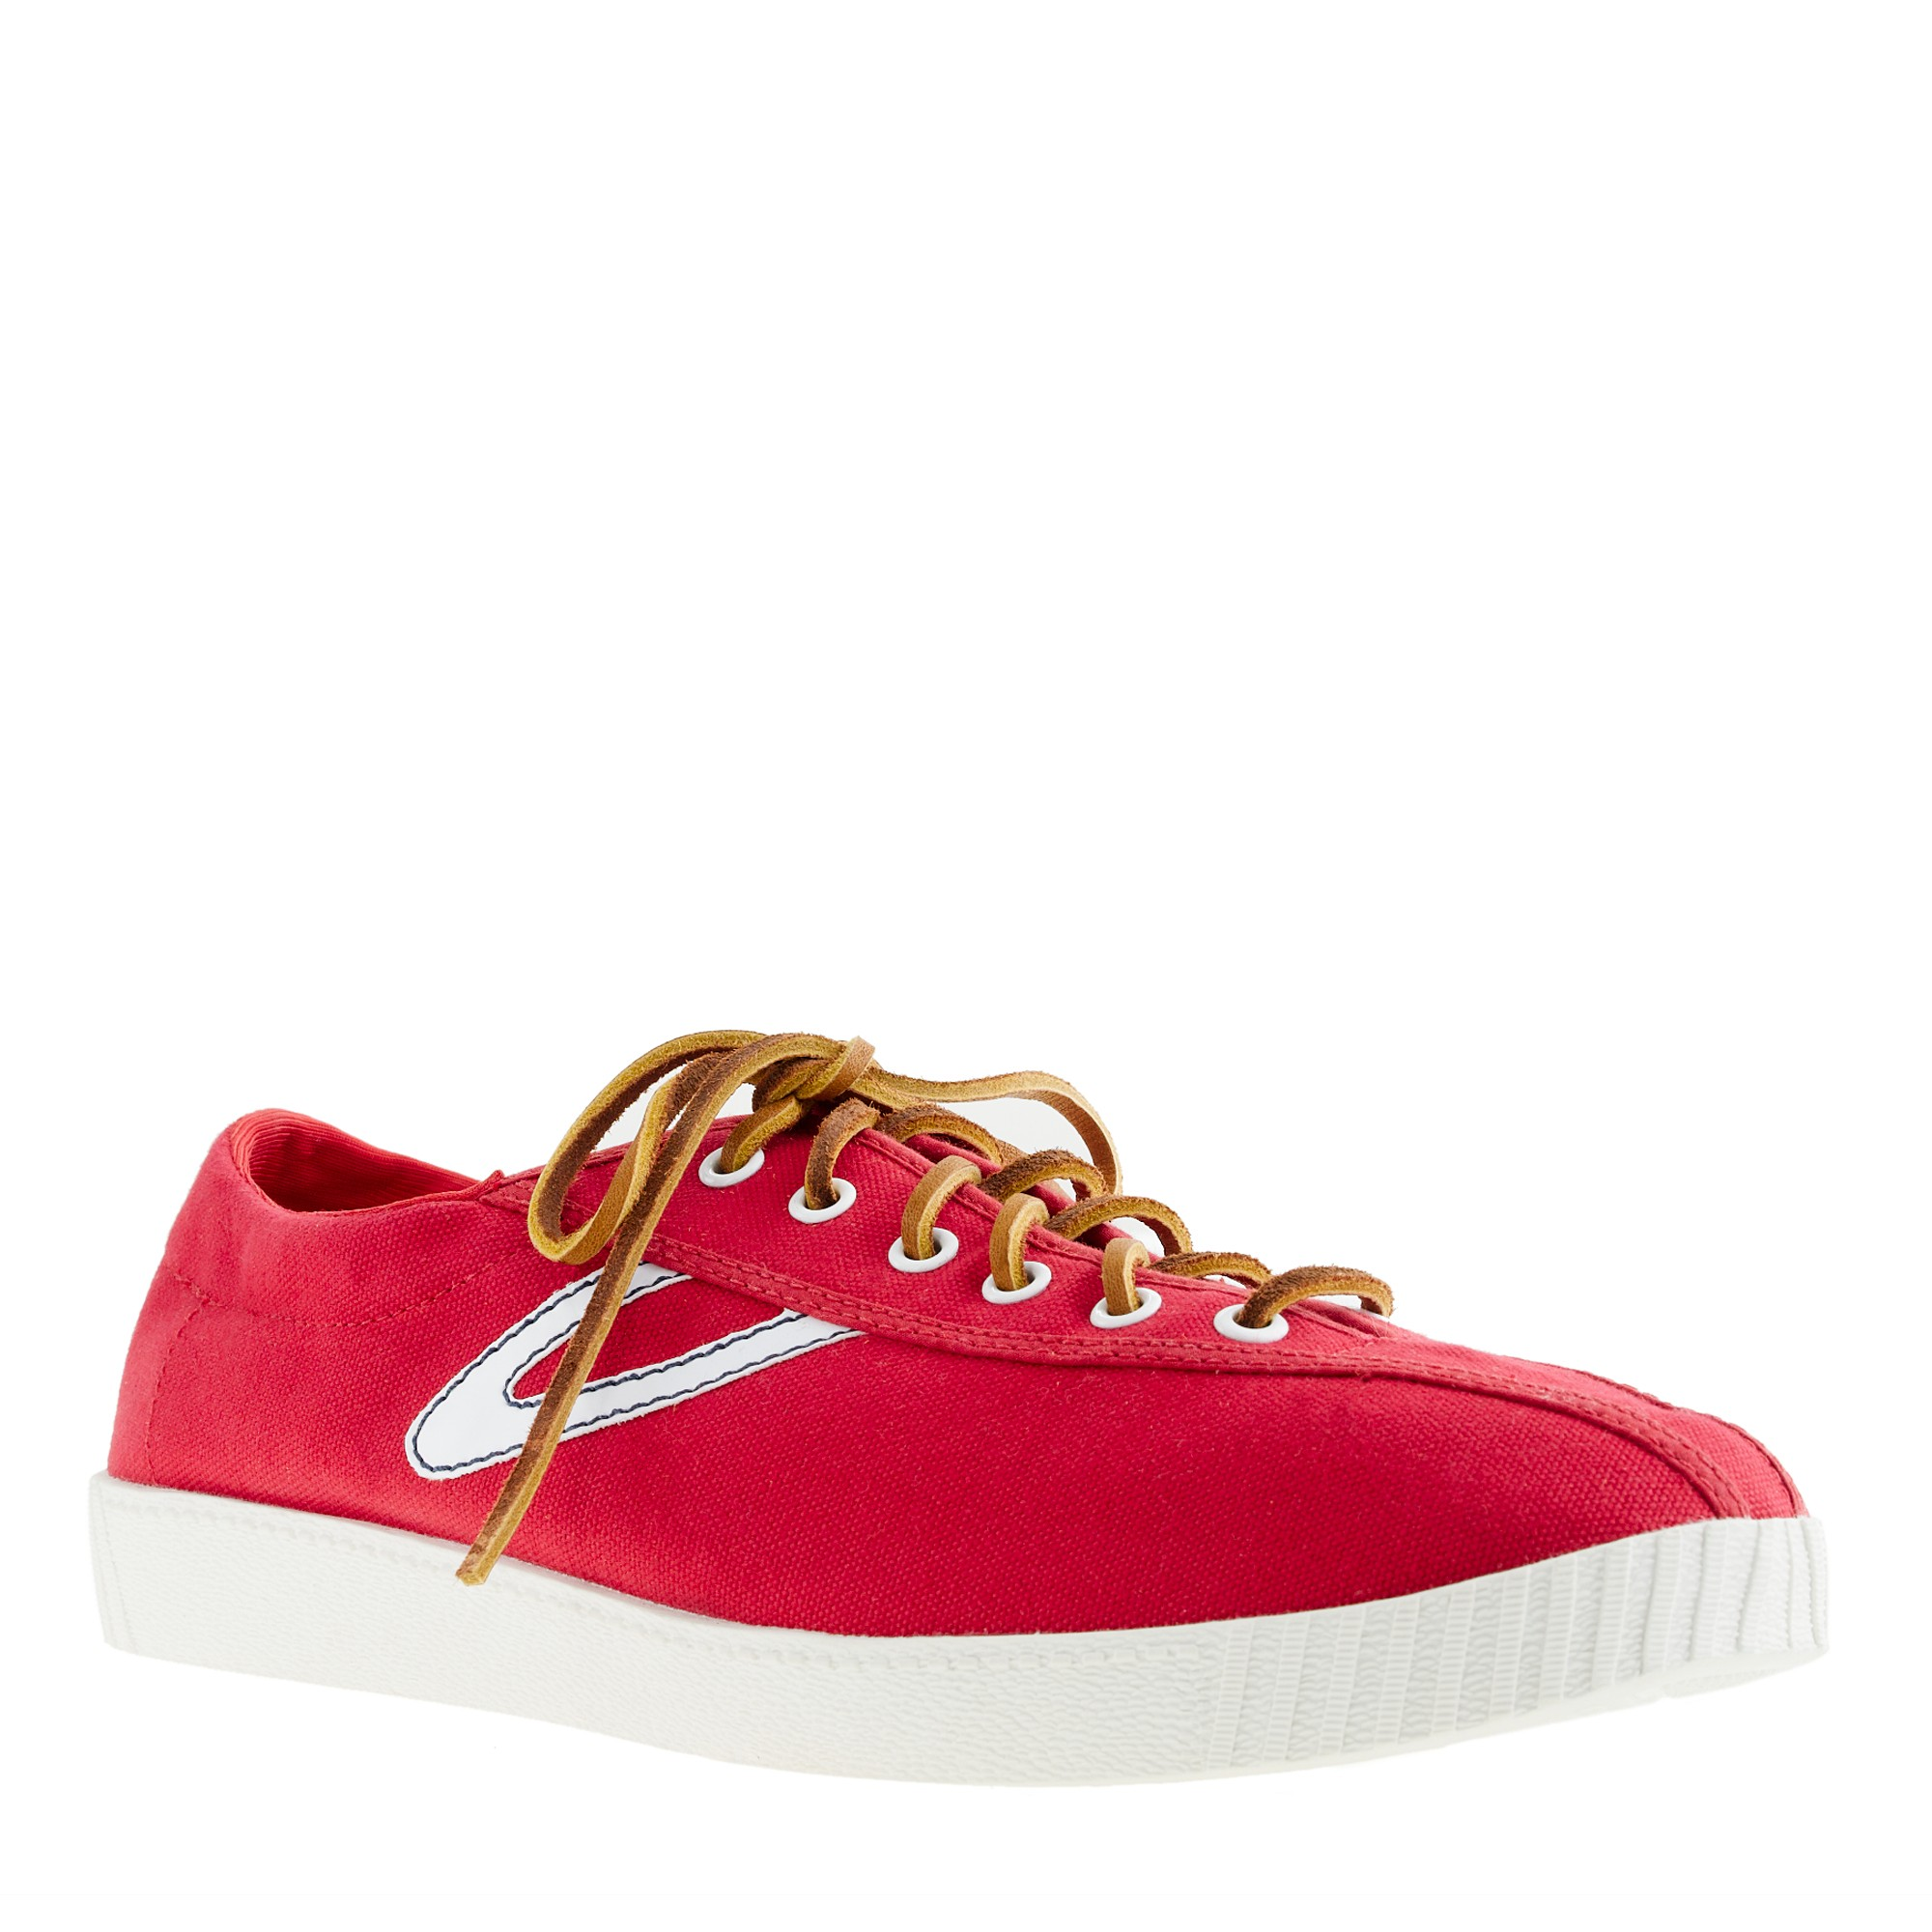 J Crew Tretorn 174 For J Crew Nylite Canvas Sneakers In Red